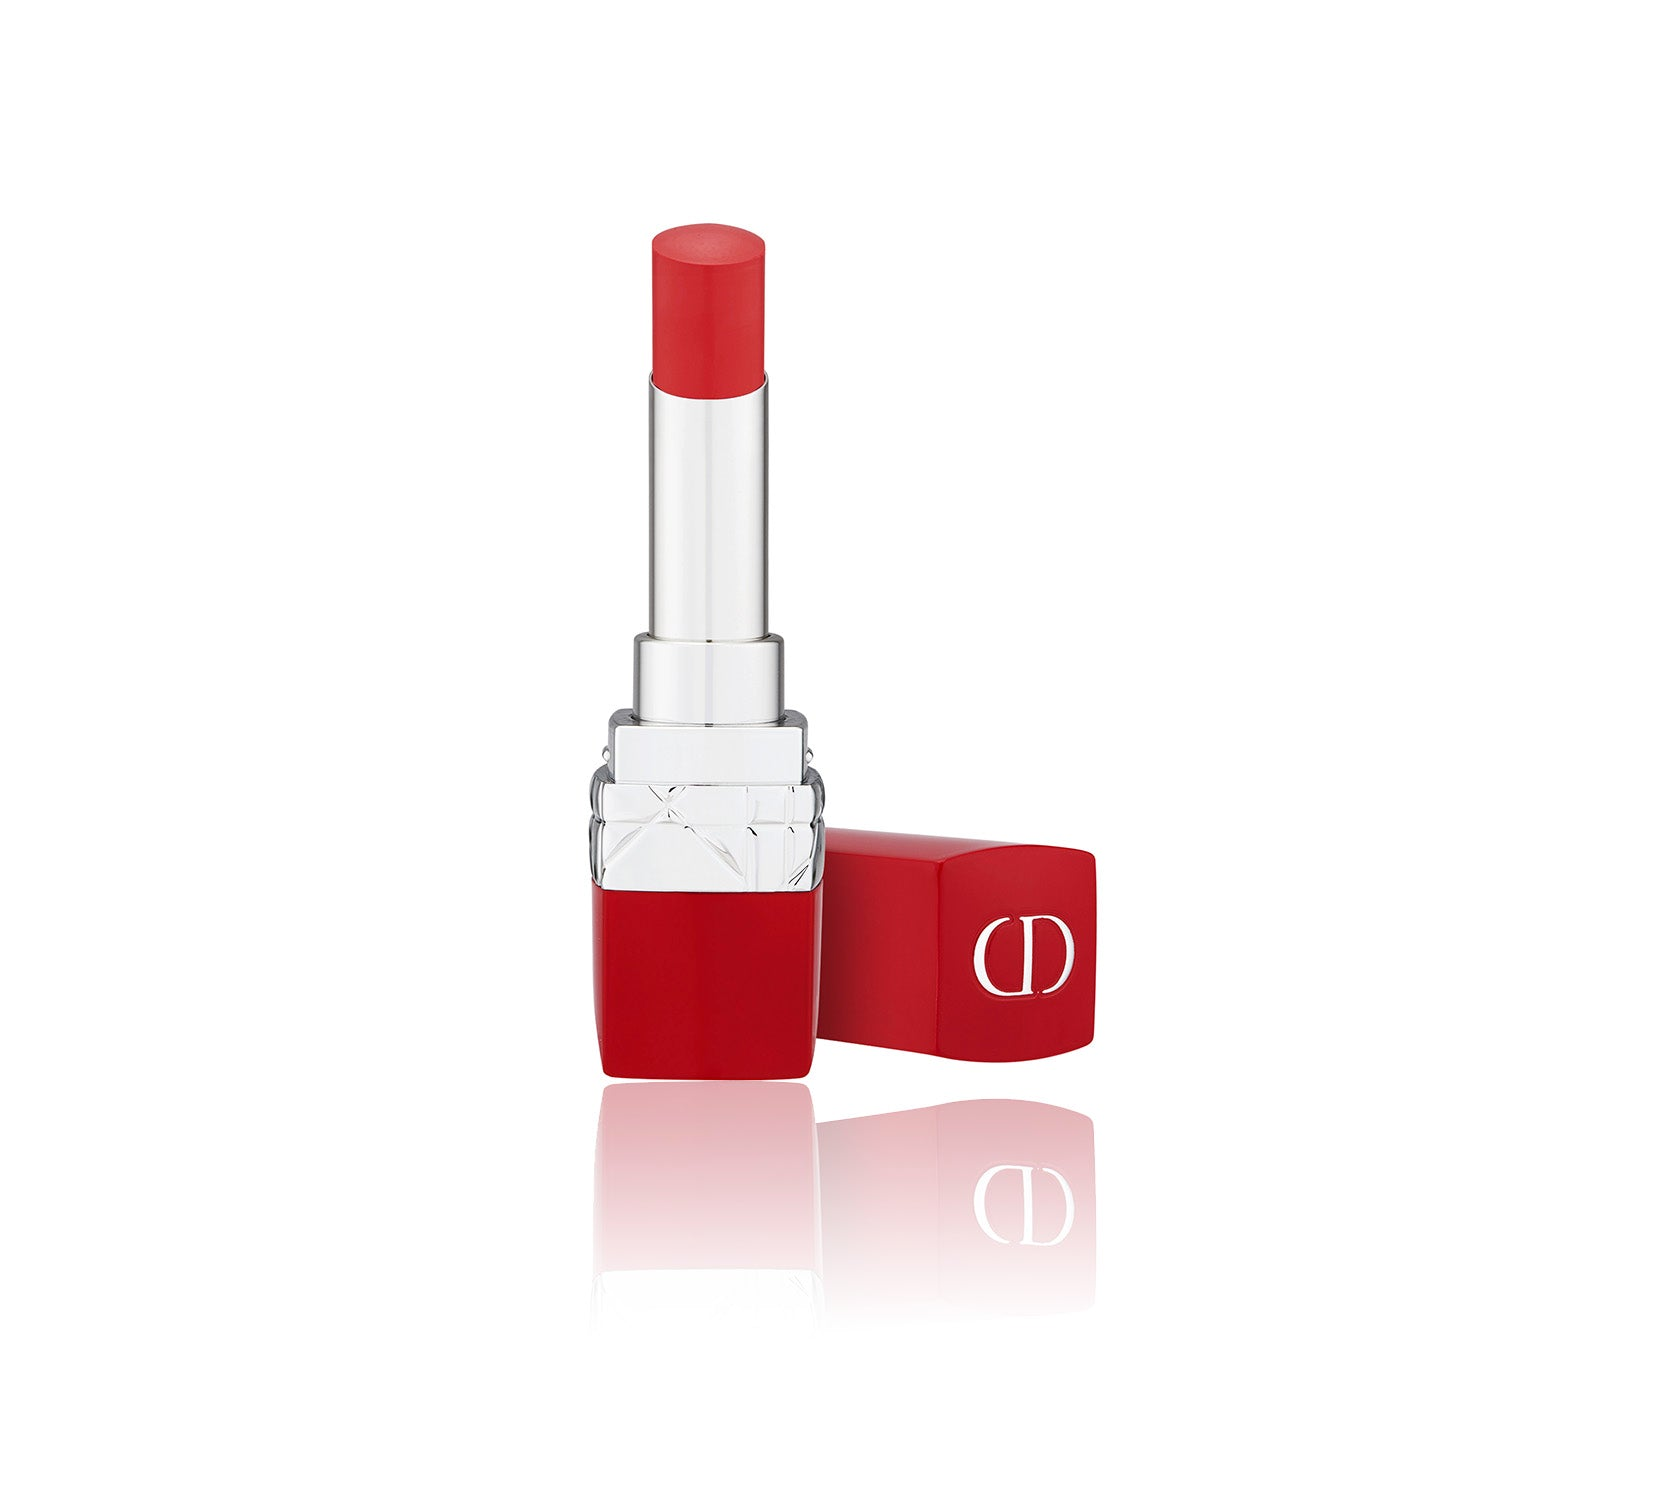 Ultra Rouge Ultra Pigmented Hydra Lipstick Weightless Wear